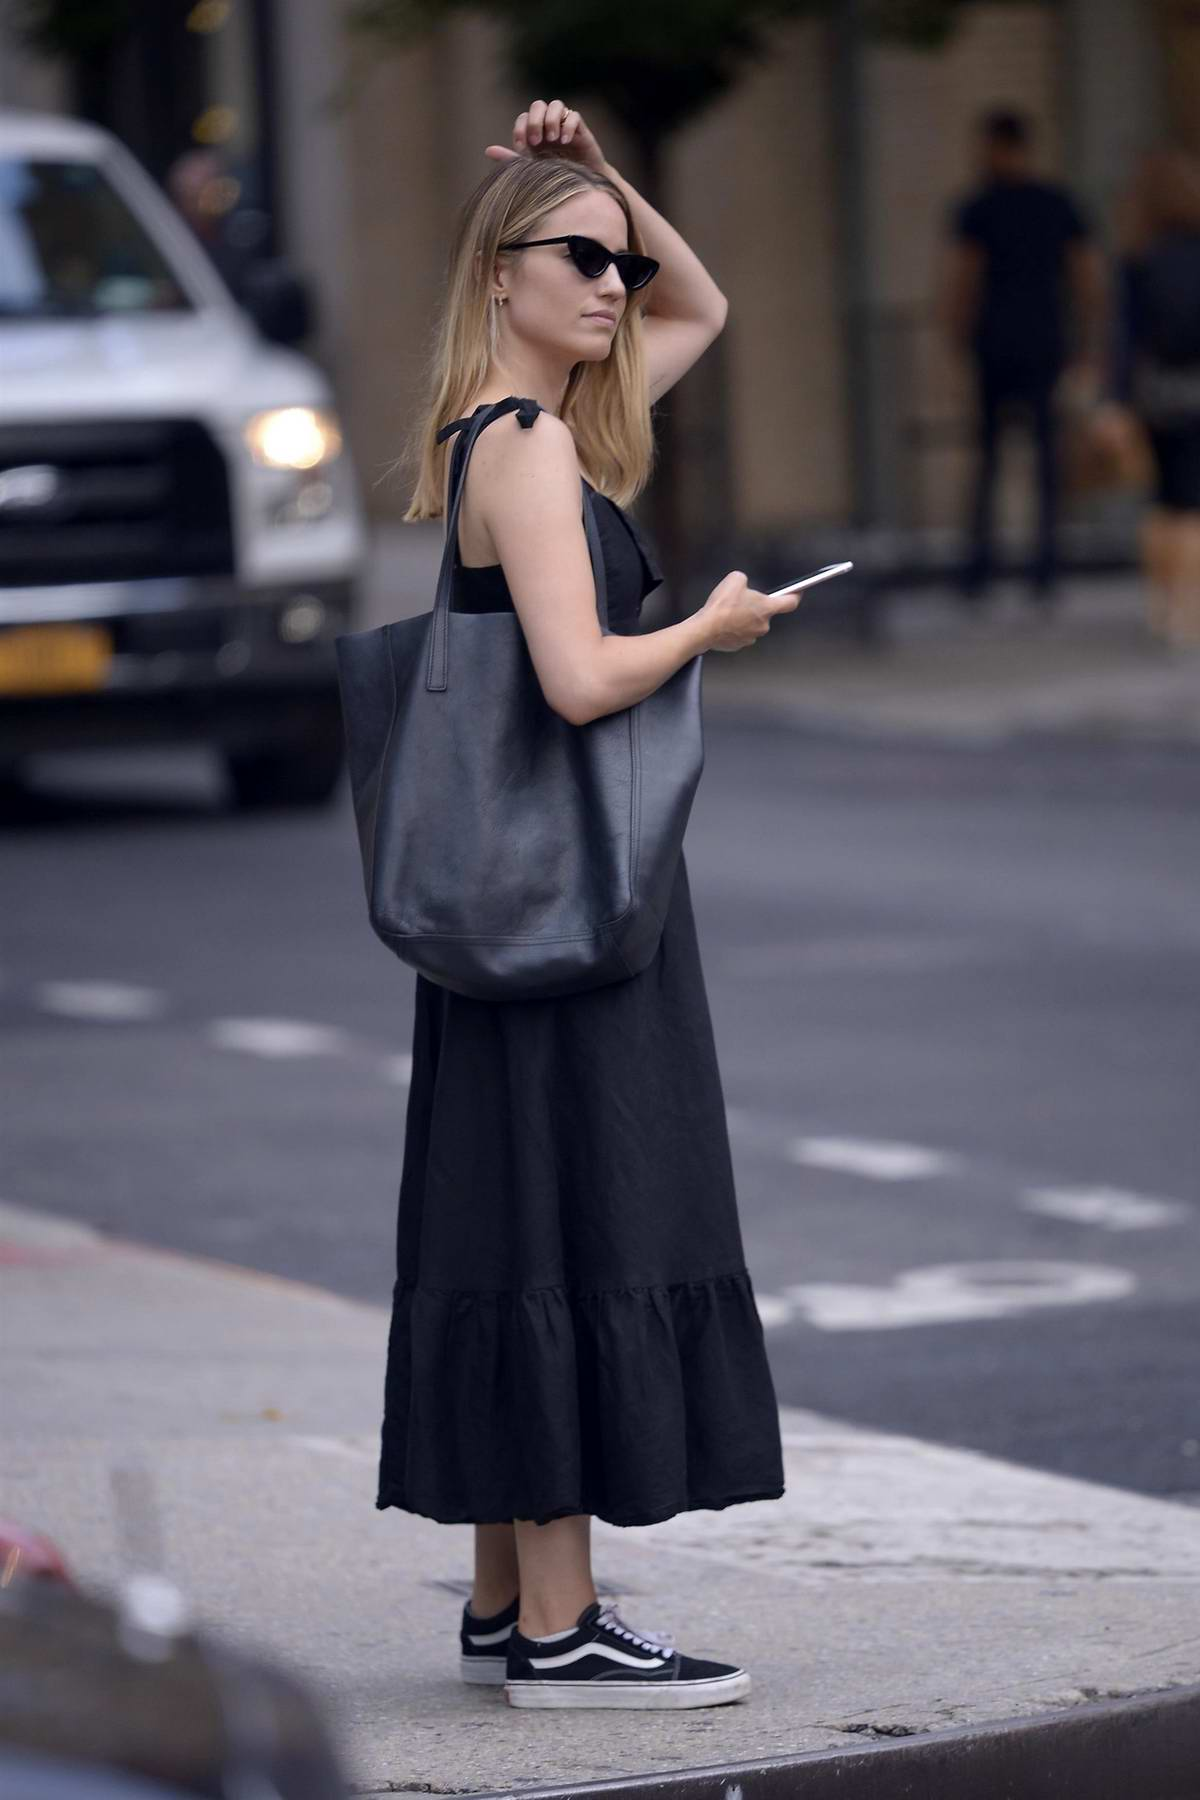 Dianna Agron stepped out in a black summer dress in New York City